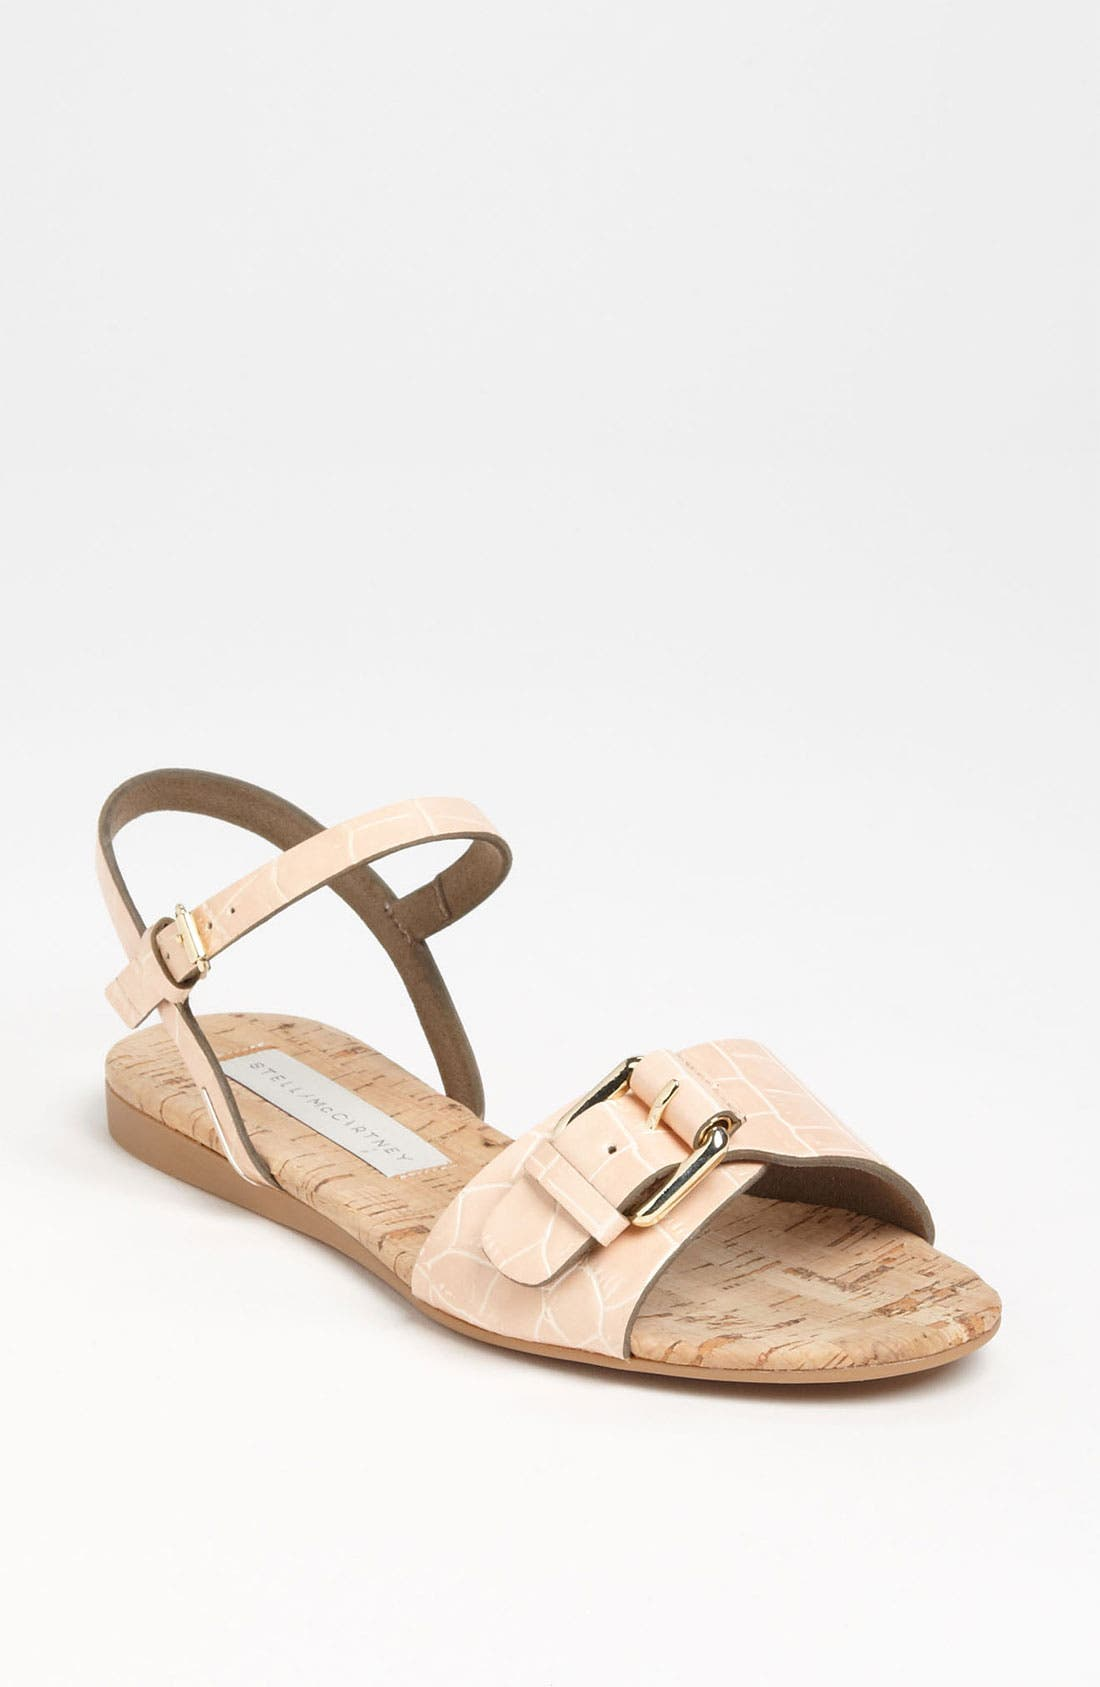 Main Image - Stella McCartney Flat Sandal